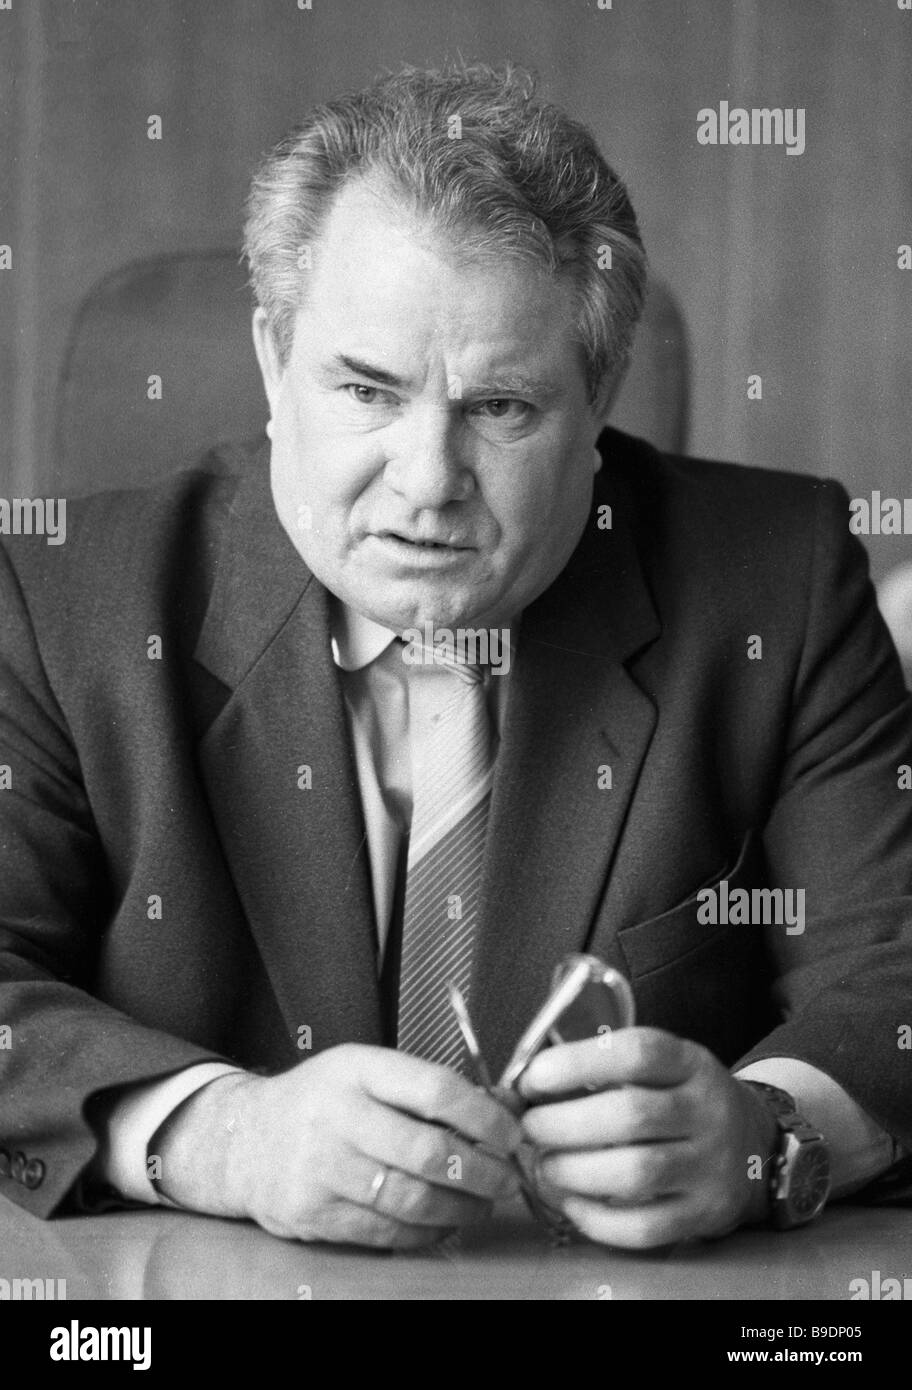 Alexander Shirvindt: biography, family, personal life, books and movies 6